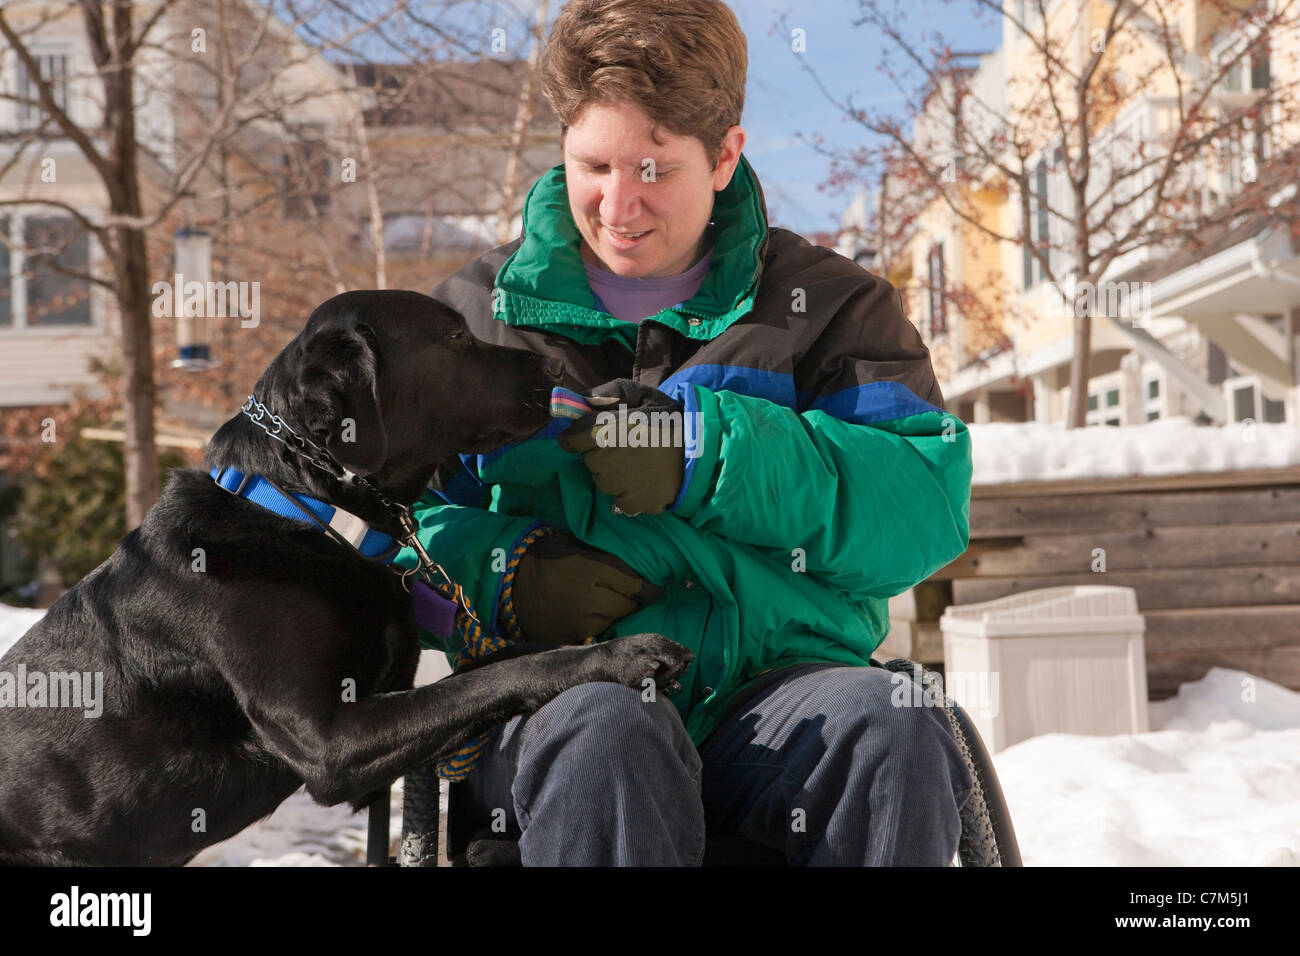 Woman with multiple sclerosis giving keys to a service dog - Stock Image